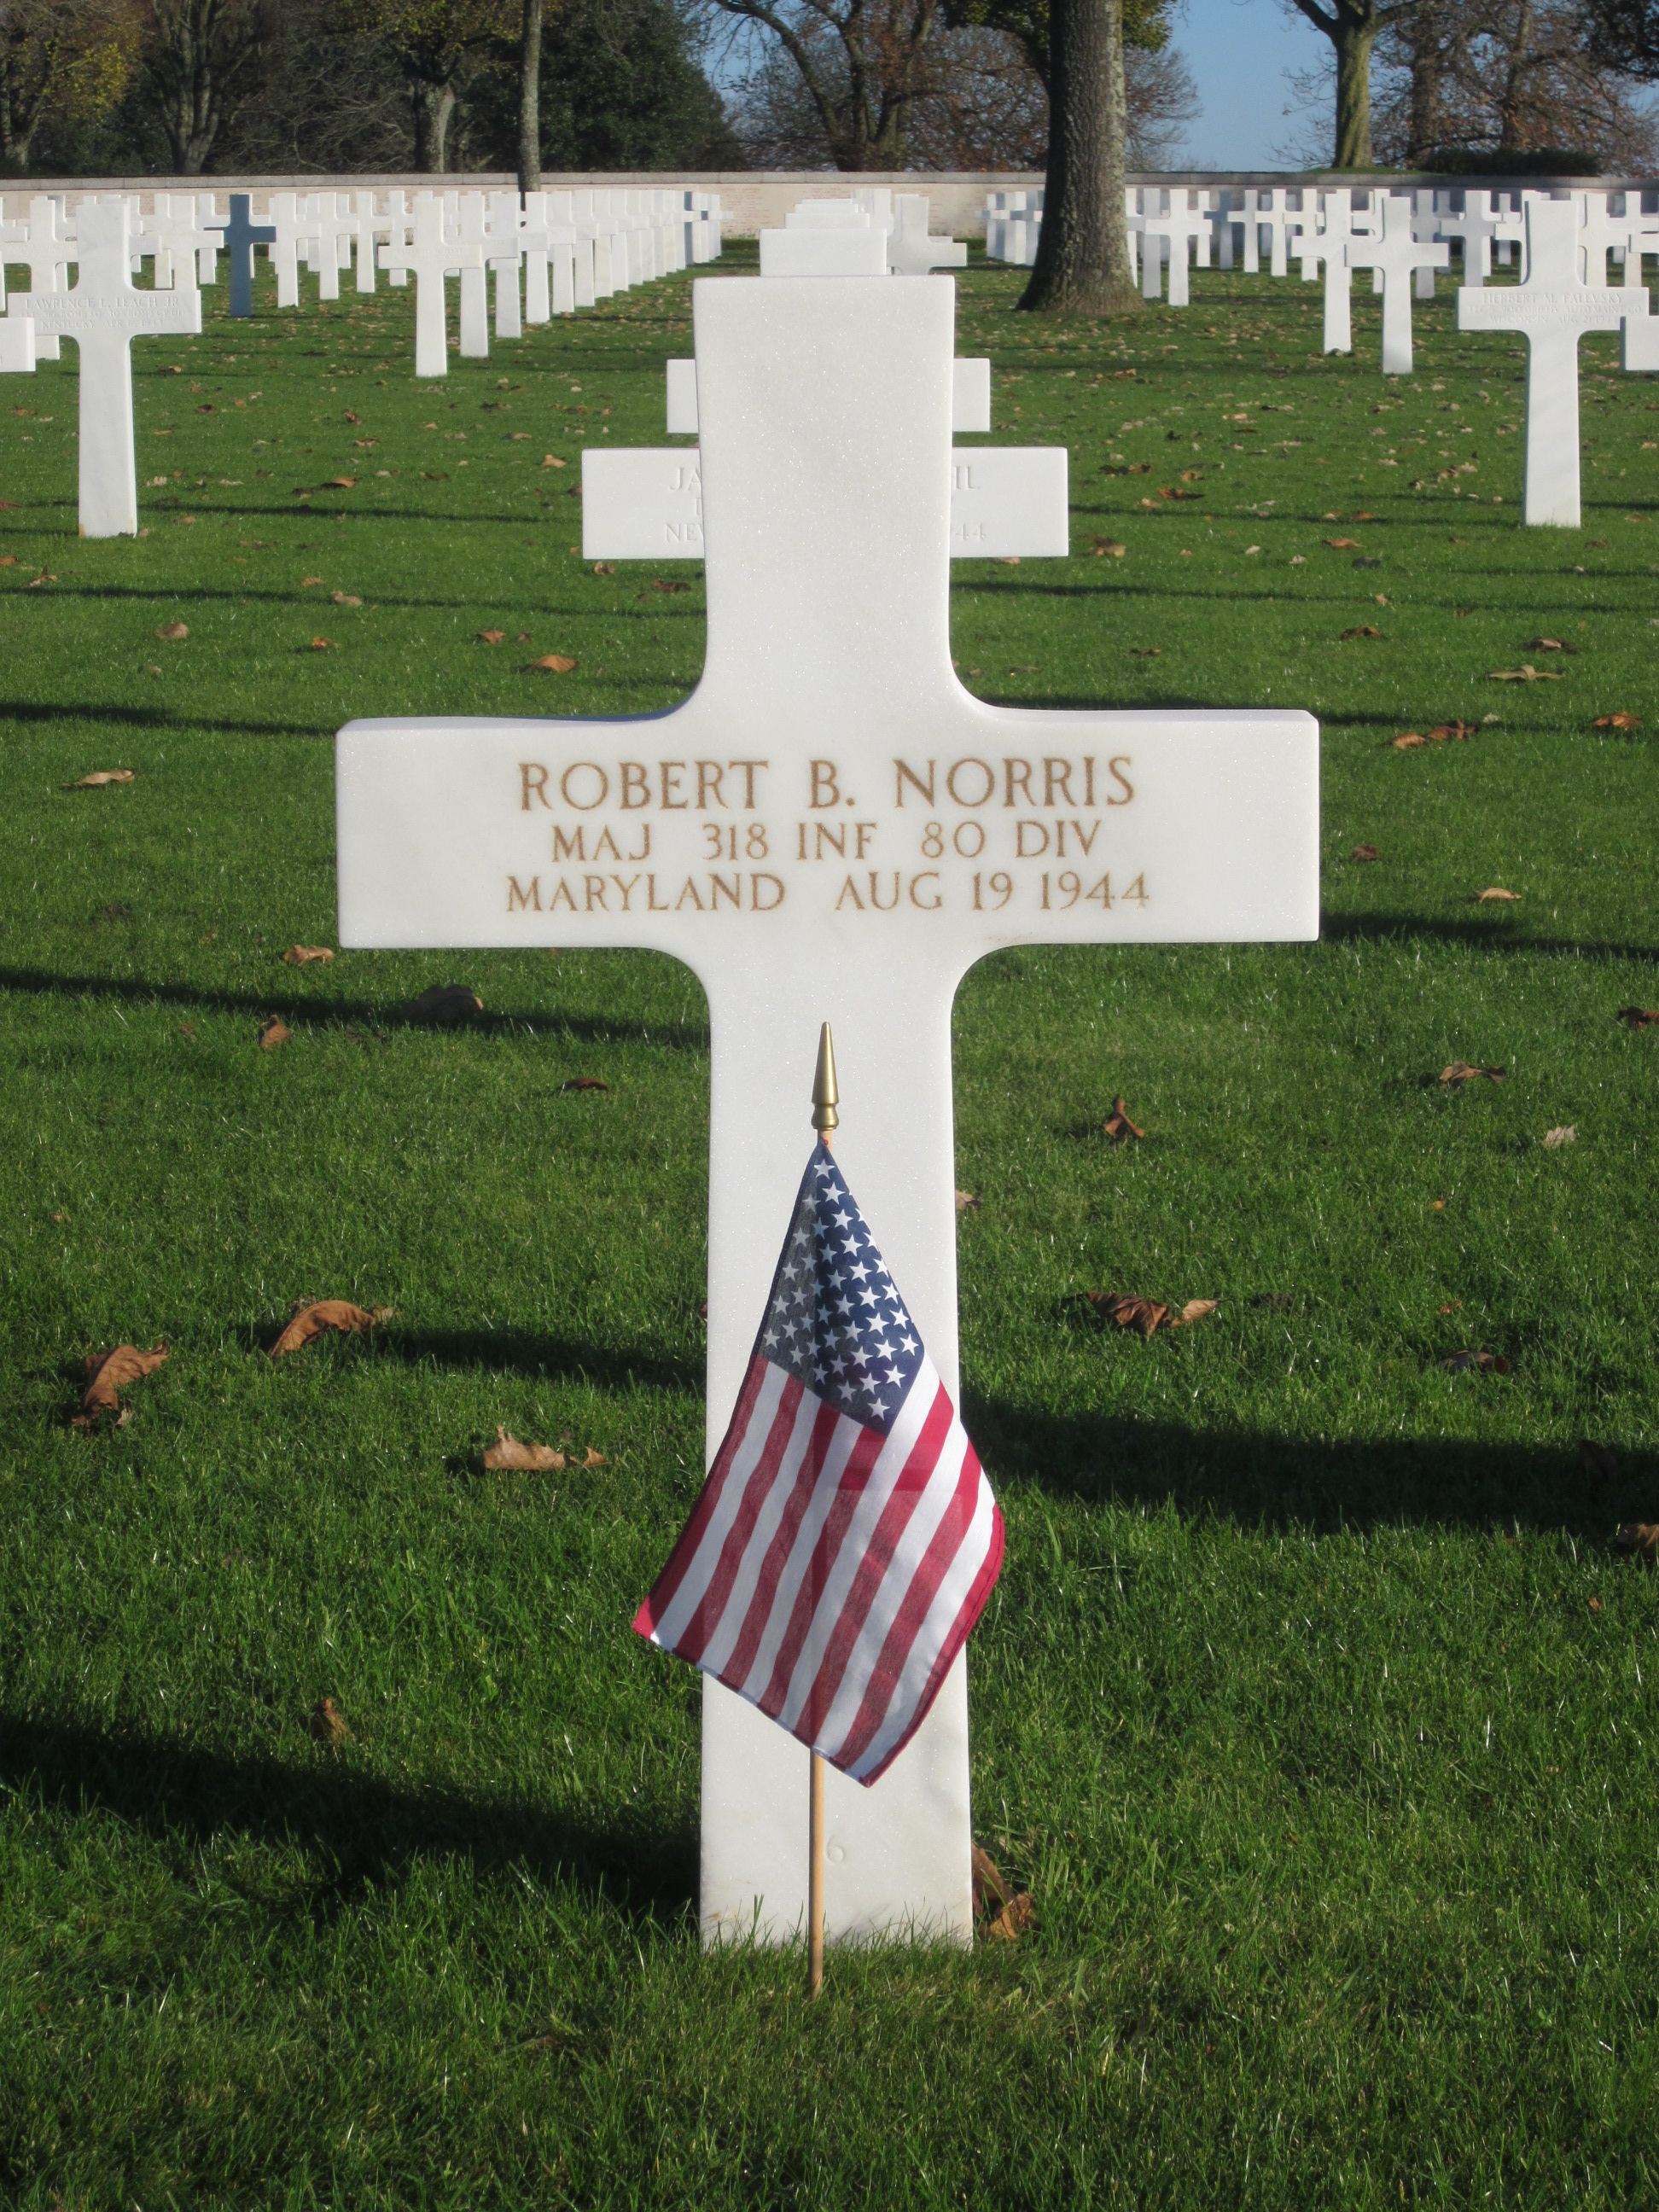 Photo of white cross marker with words Robert B. Norris Maj 318 Inf 80 Div Maryland Aug 19 1944. A US flag is planted in front of the marker.